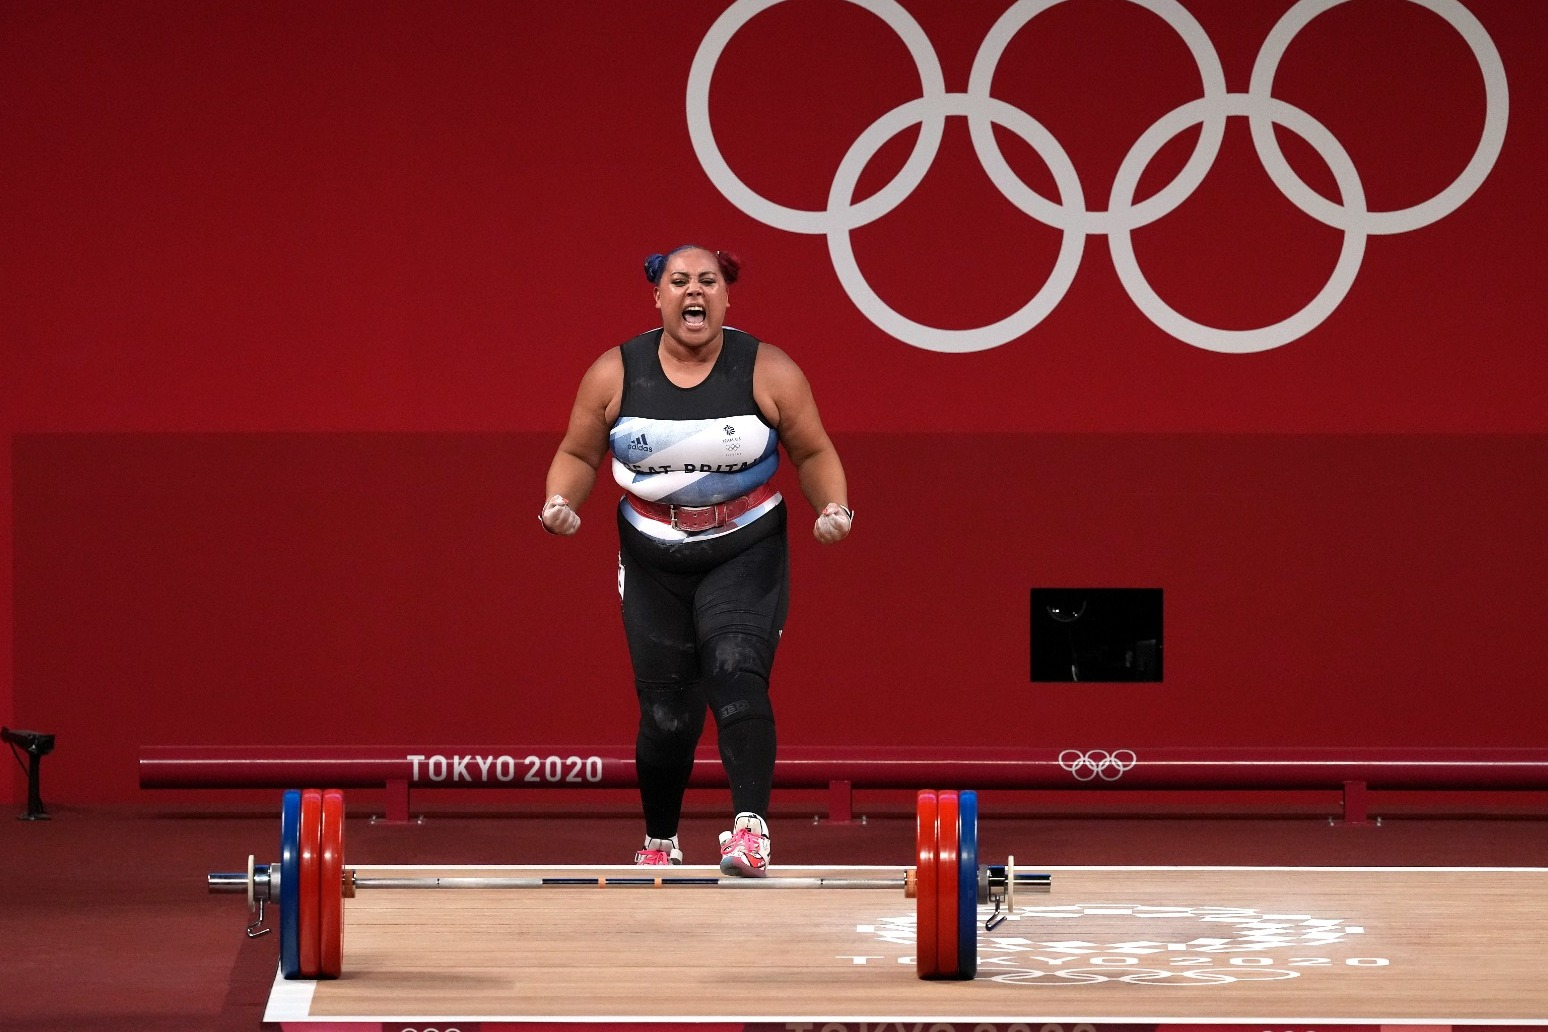 Emily Campbell secures Great Britain's first women's Olympic weightlifting medal